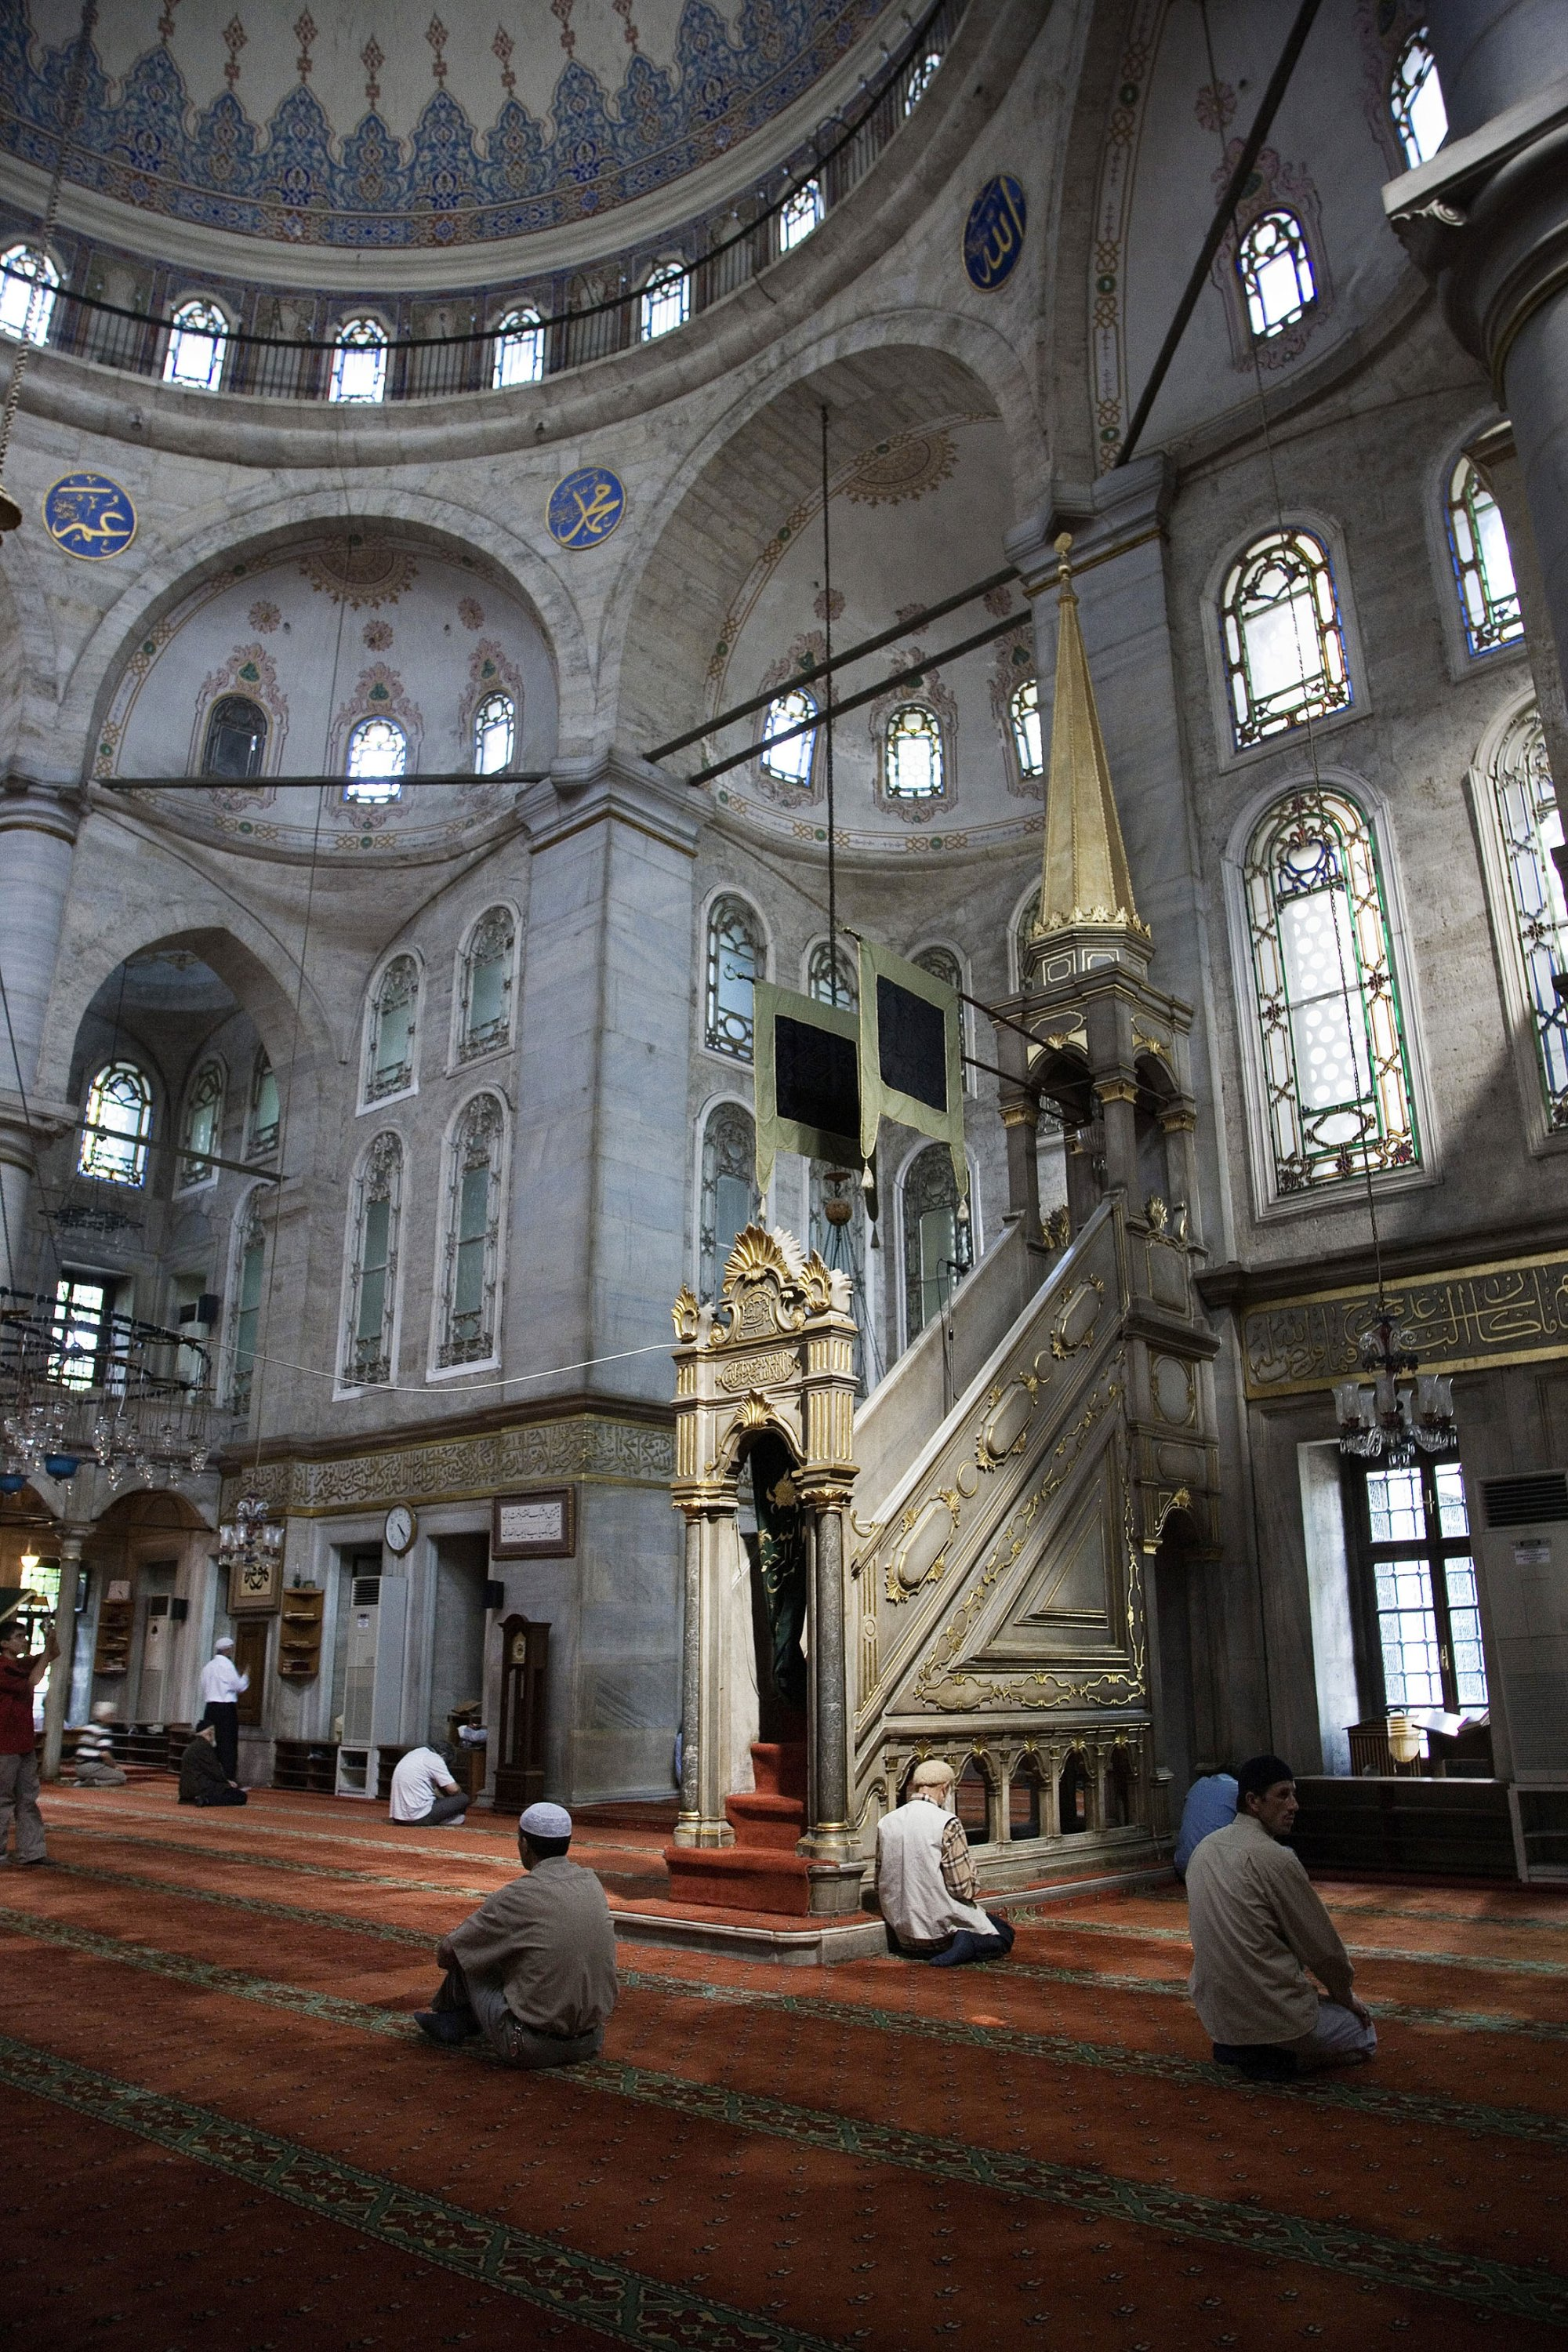 The interior of the Eyüp Sultan Mosque. (Universal Images Group via Getty Images)